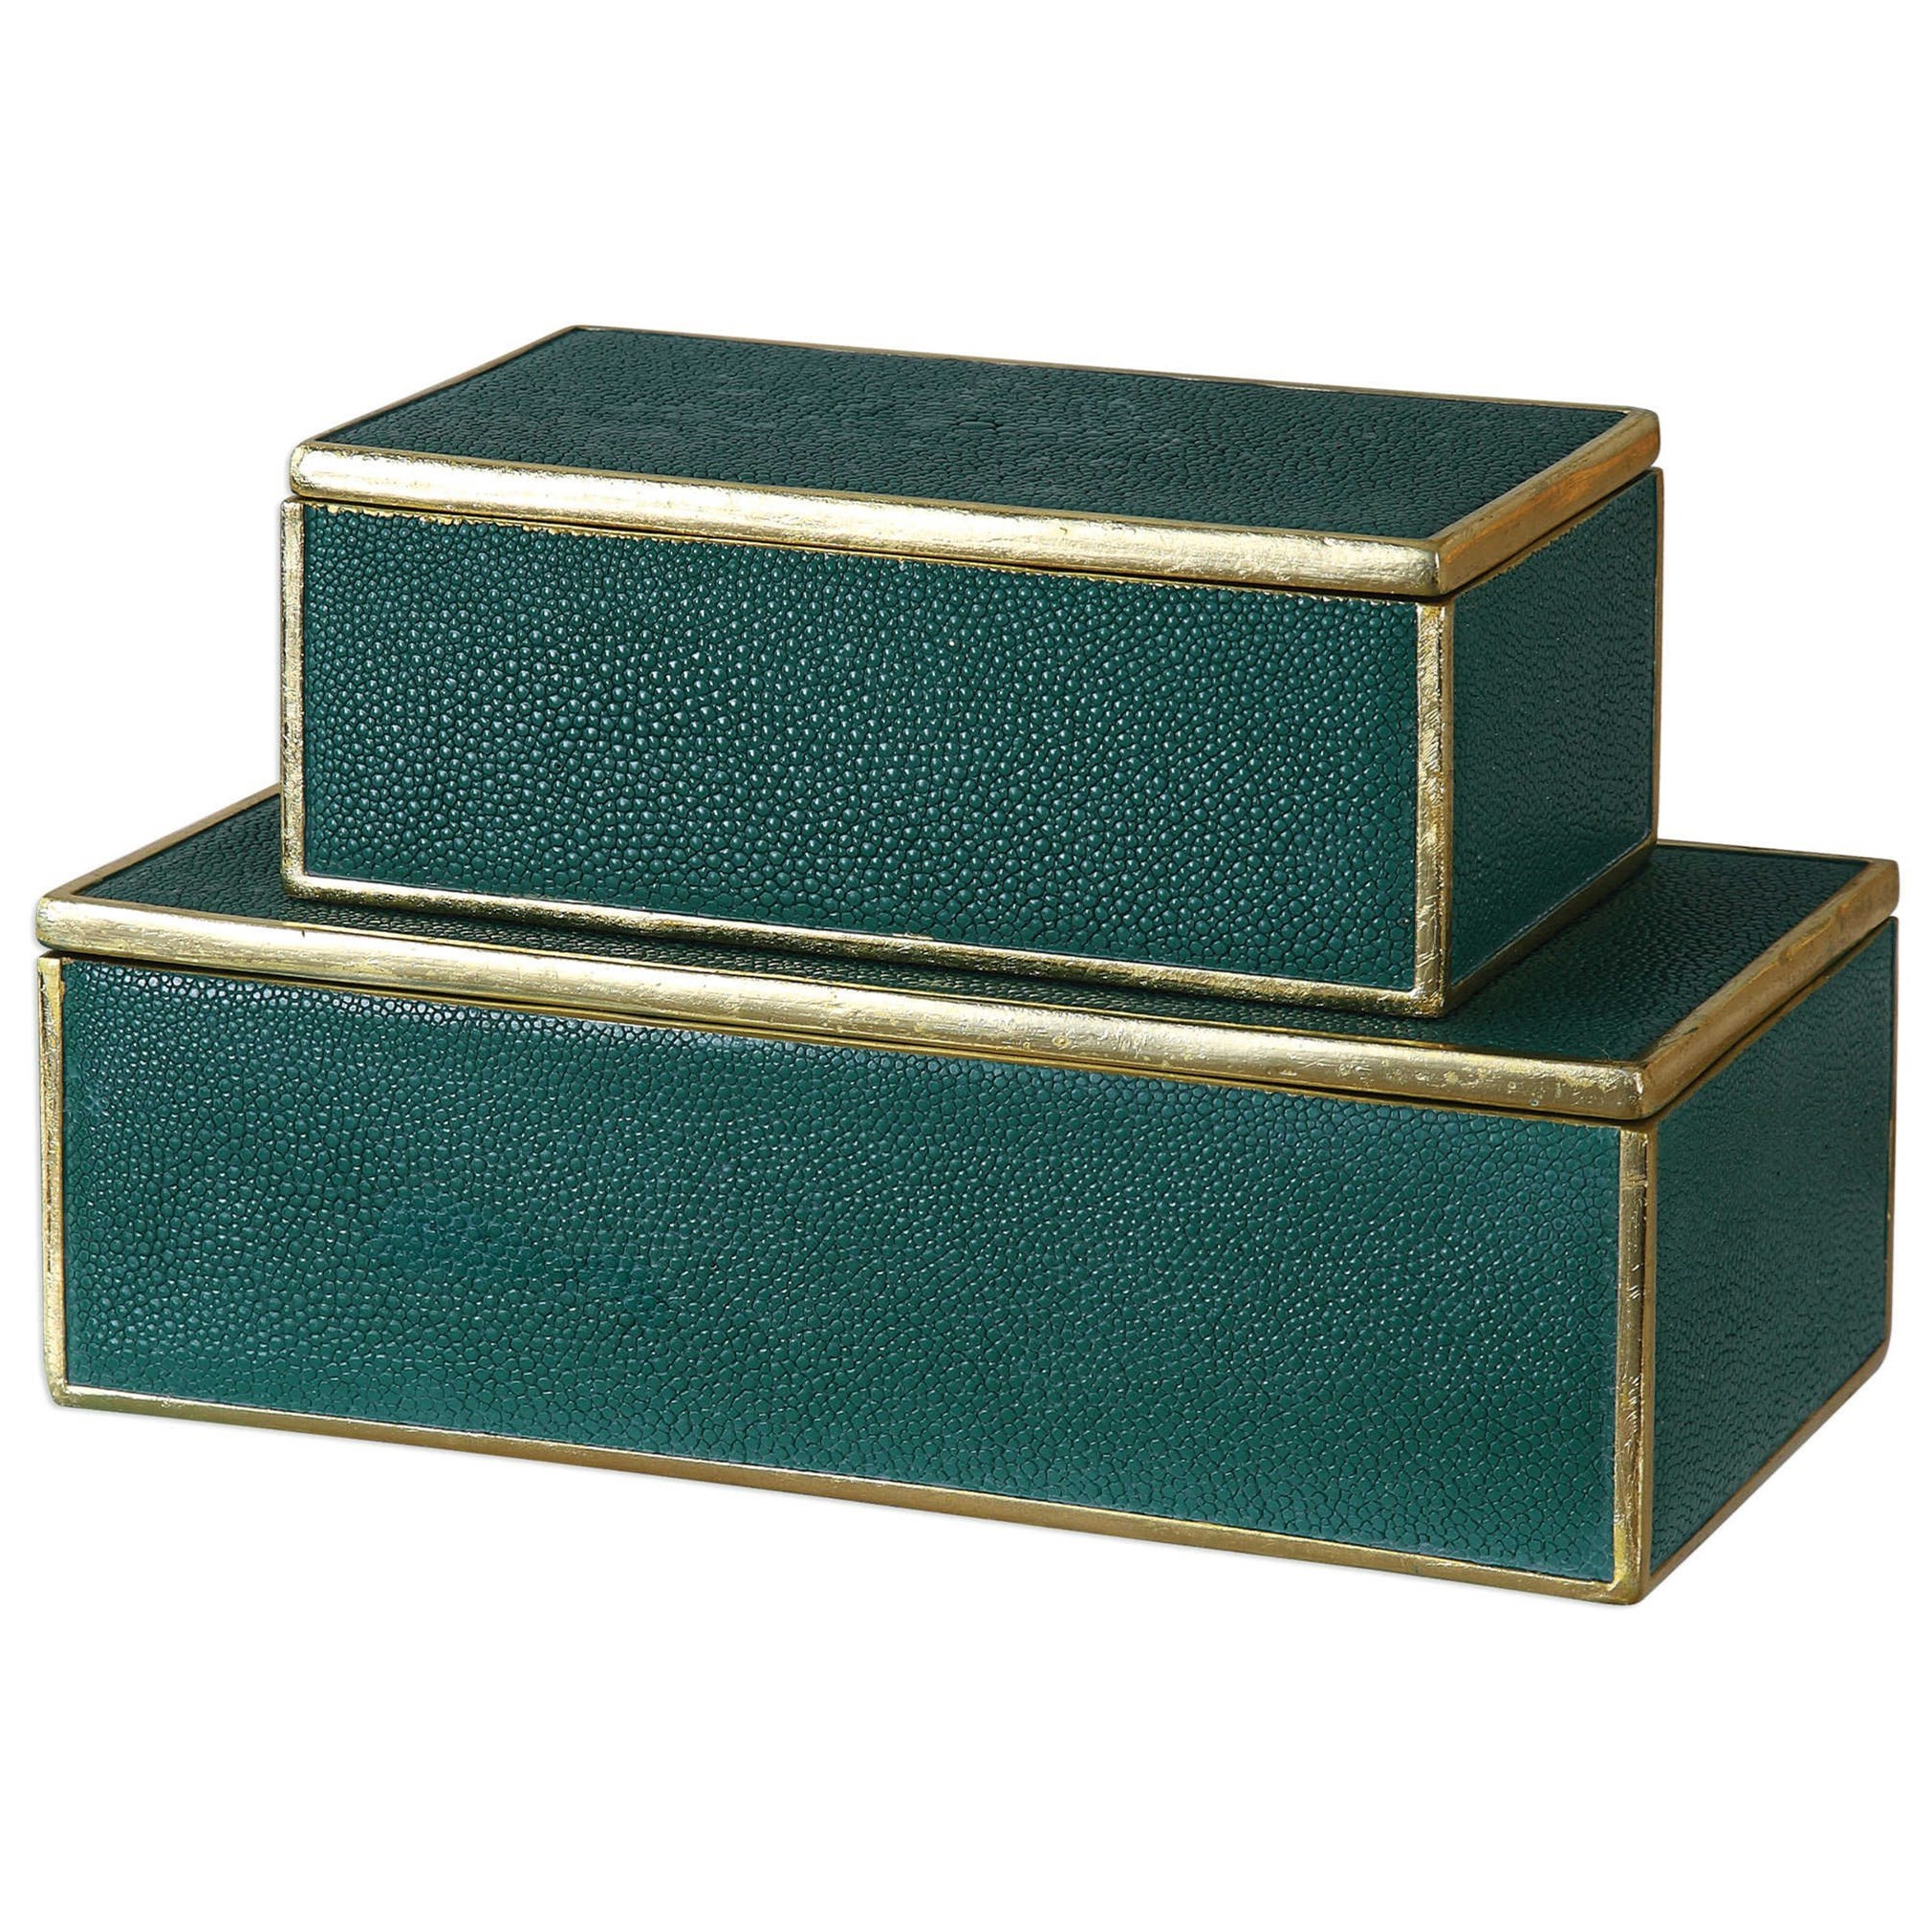 Karis Emerald Green Boxes (Set of 2)